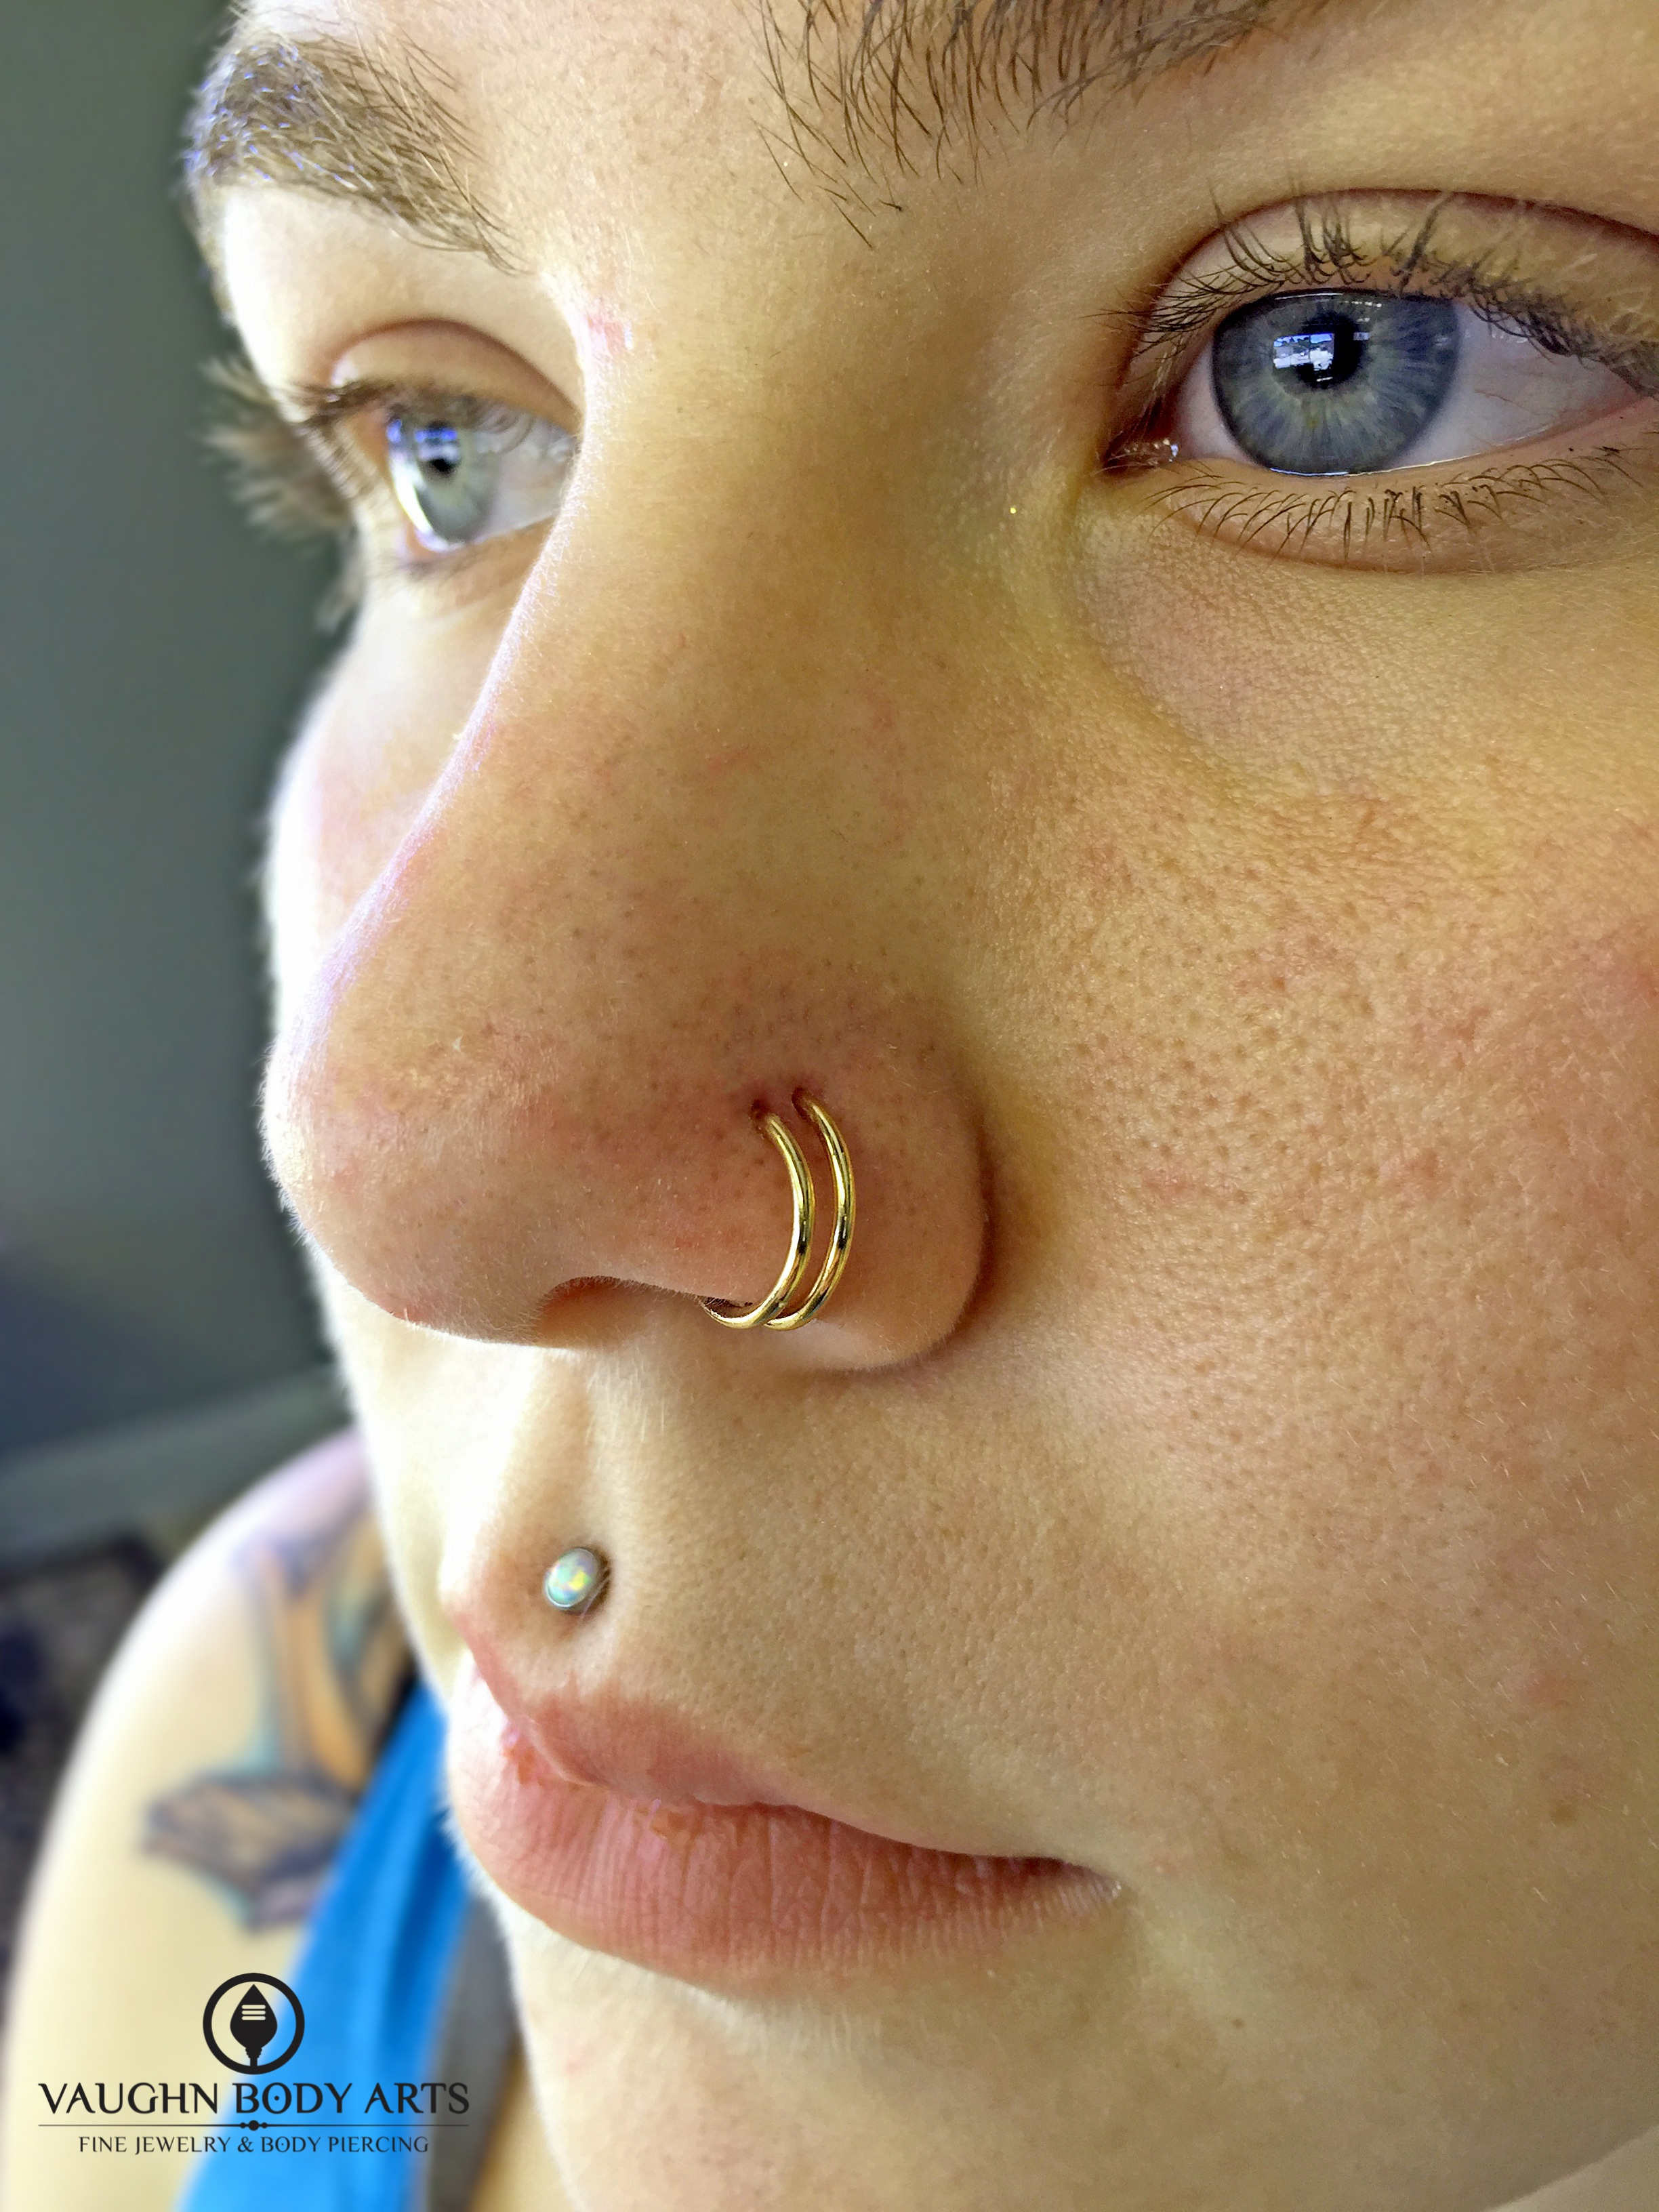 Double nostril piercings with 18k rose gold continuous rings from Anatometal.